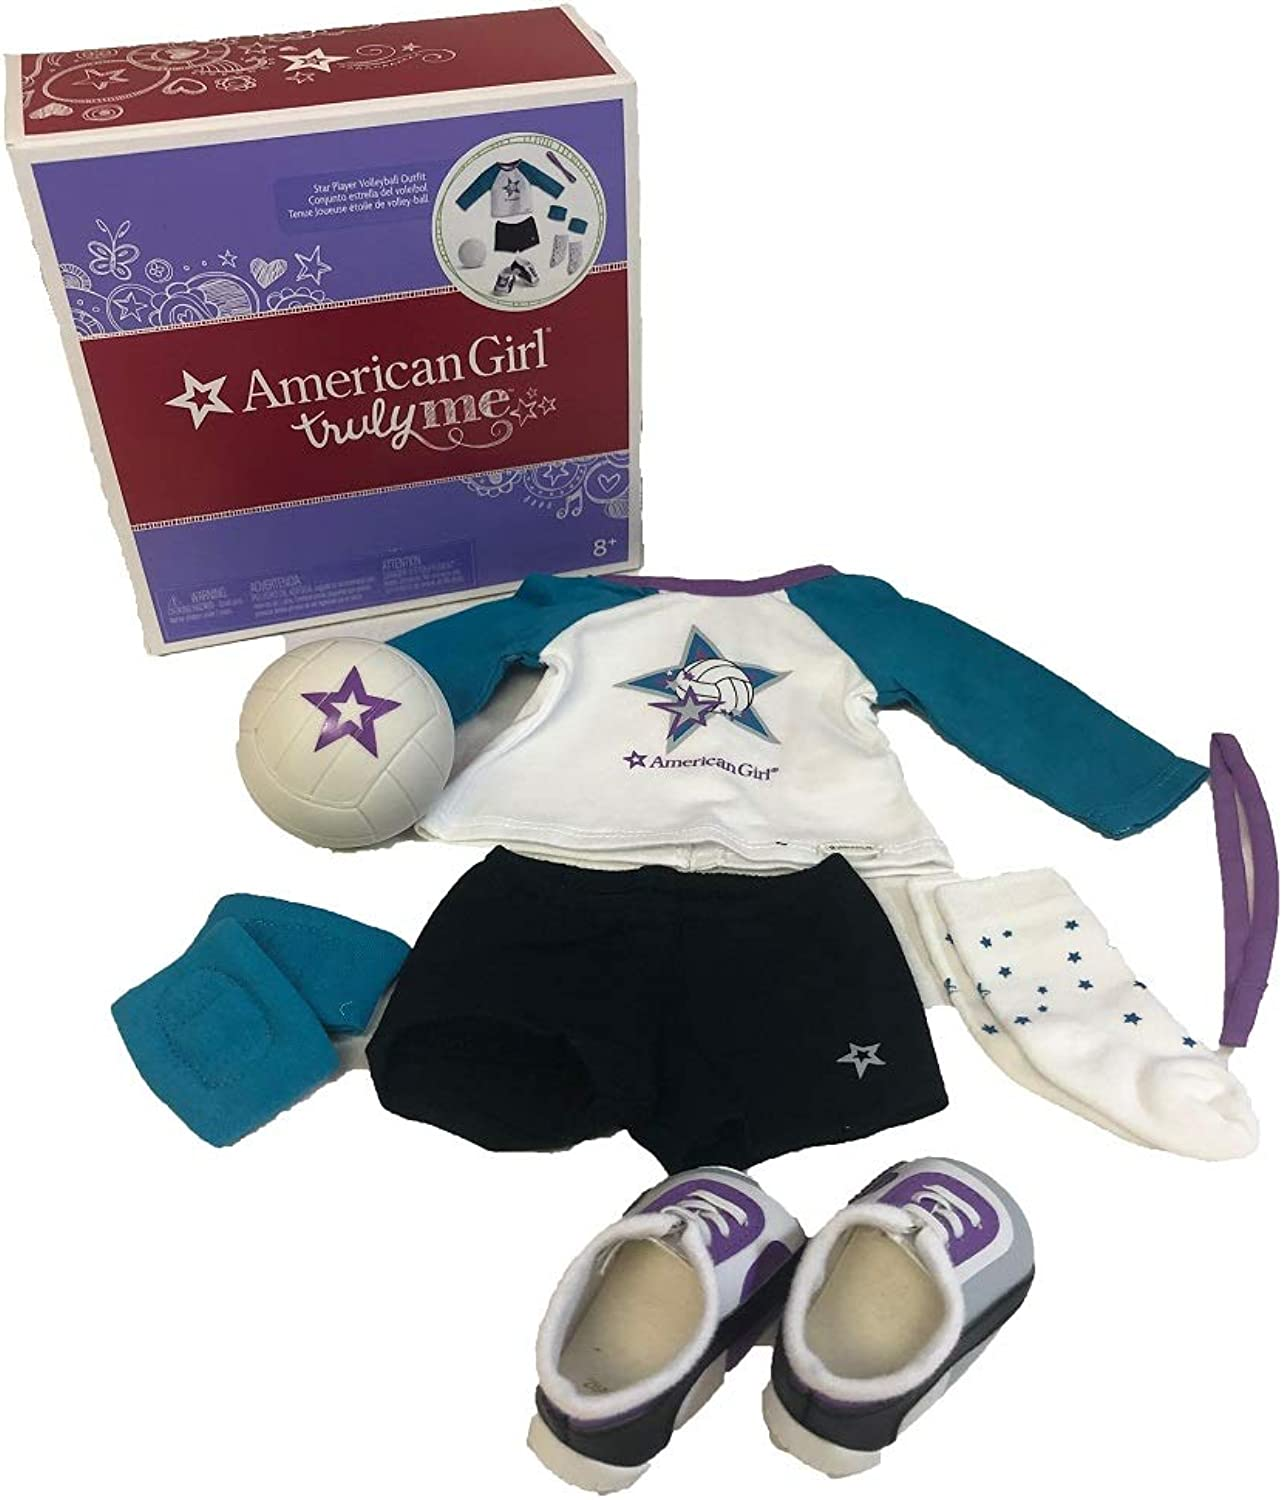 American Girl Star Player Volleyball Outfit for for for 18inch Dolls